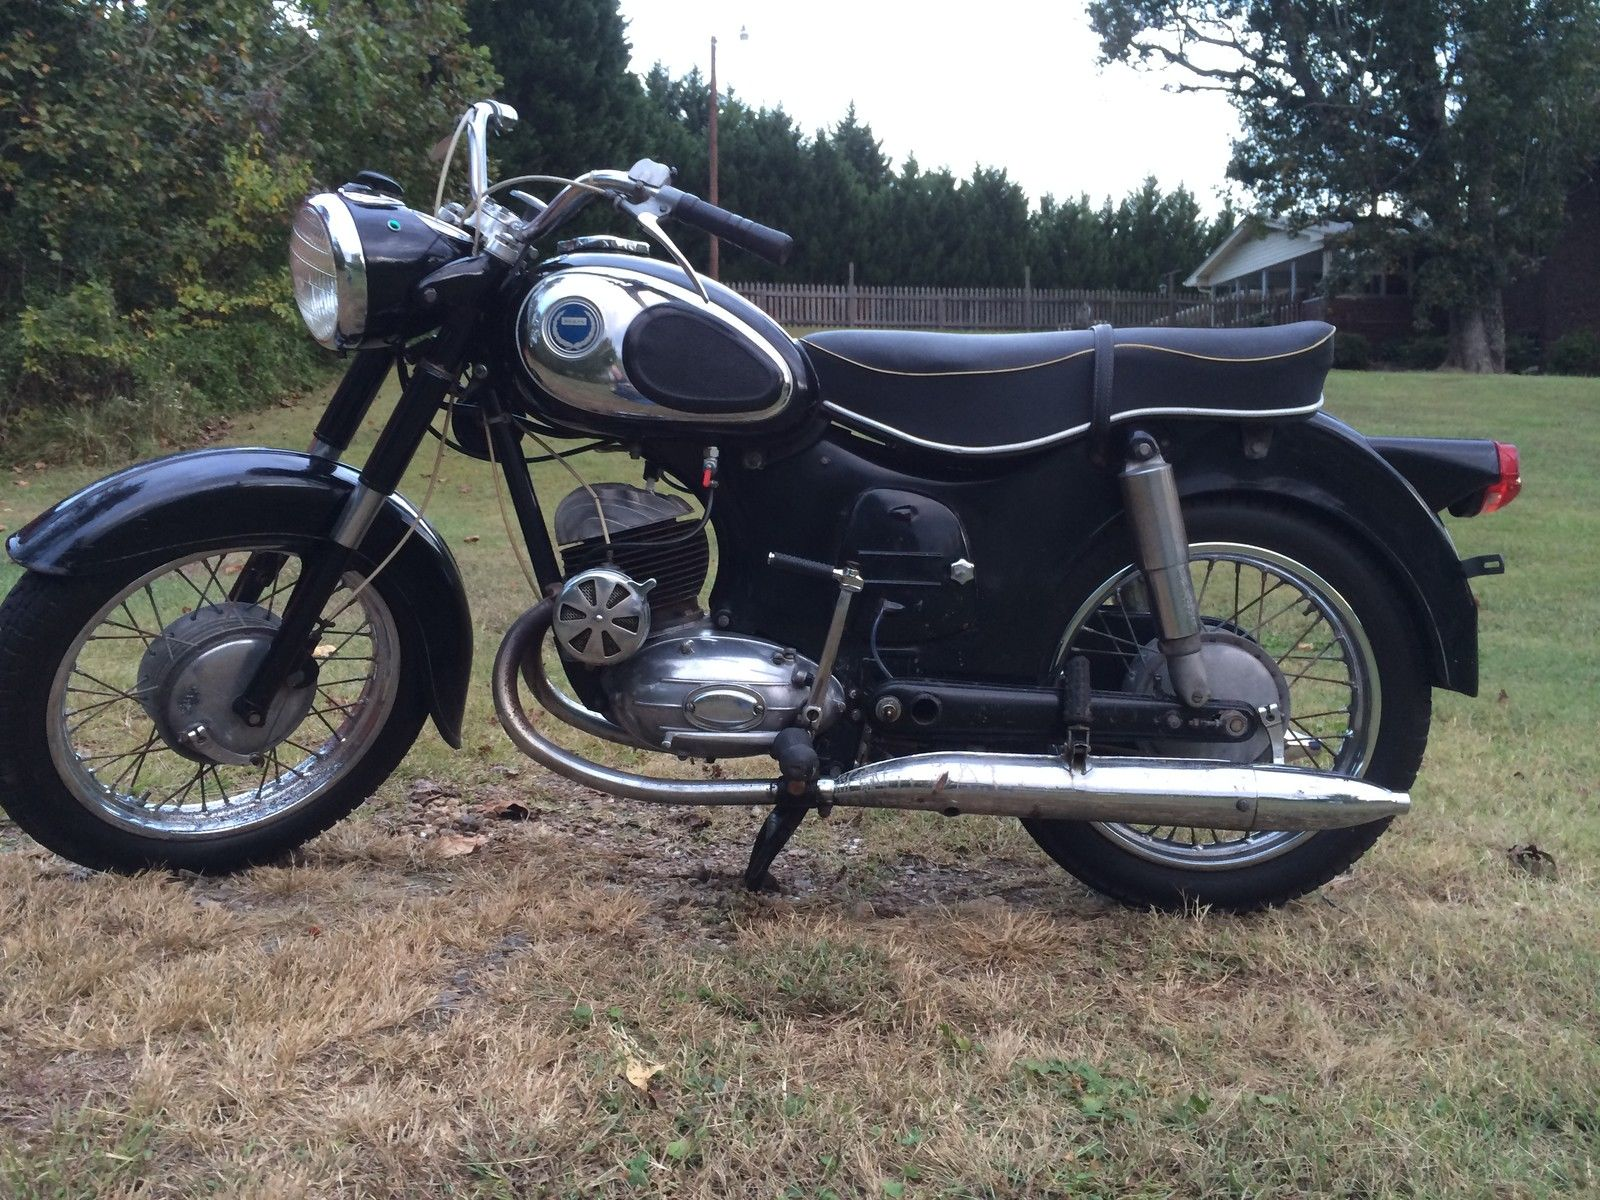 1965 Sears 175cc Motorcycle Made By Puch In Austria